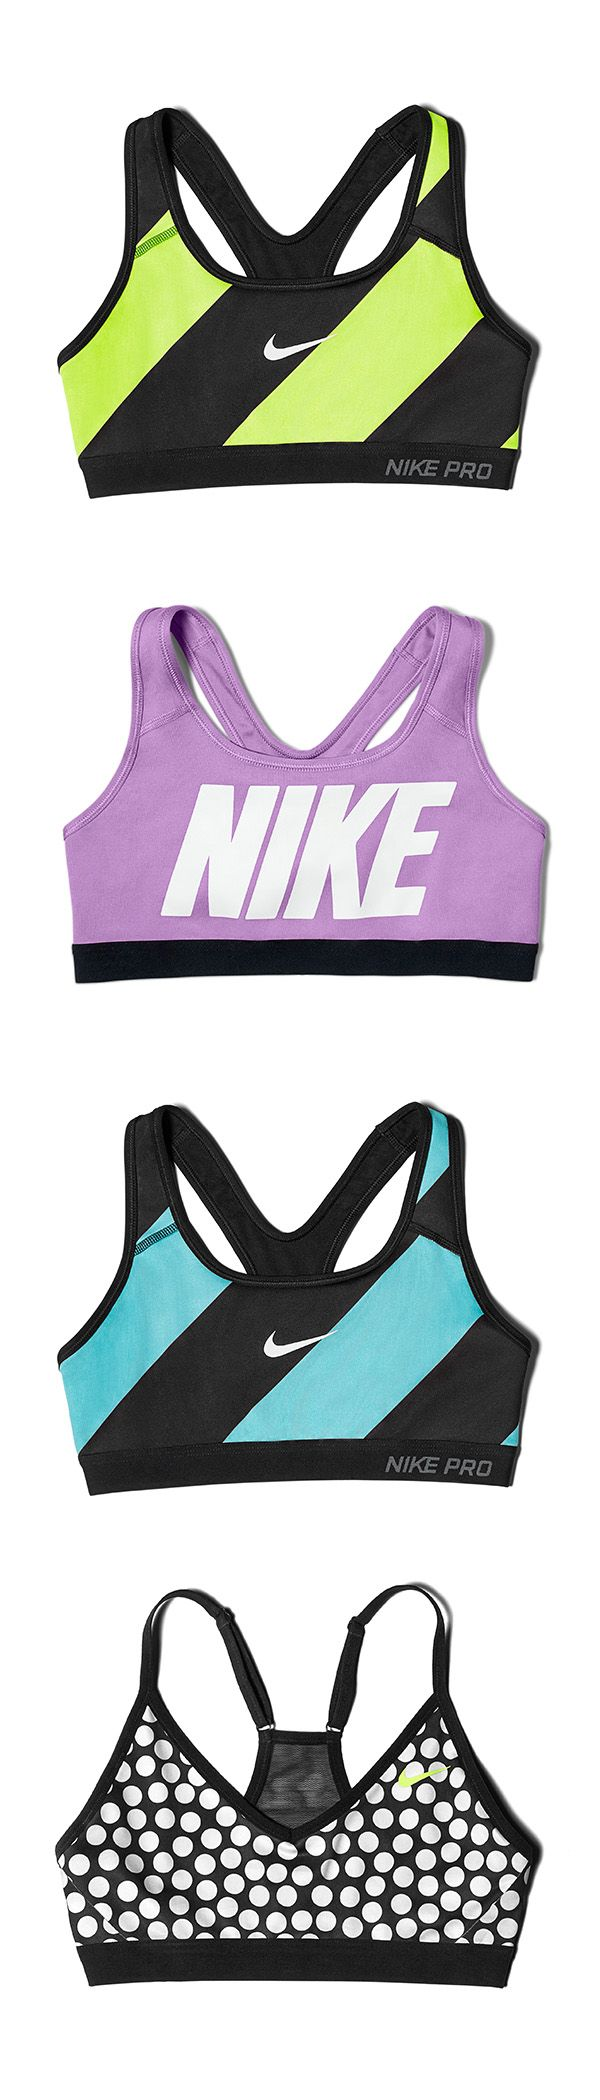 Style it bold with Nike Pro Bras. Mix and match all-new colors and patterns for a look that's all you.